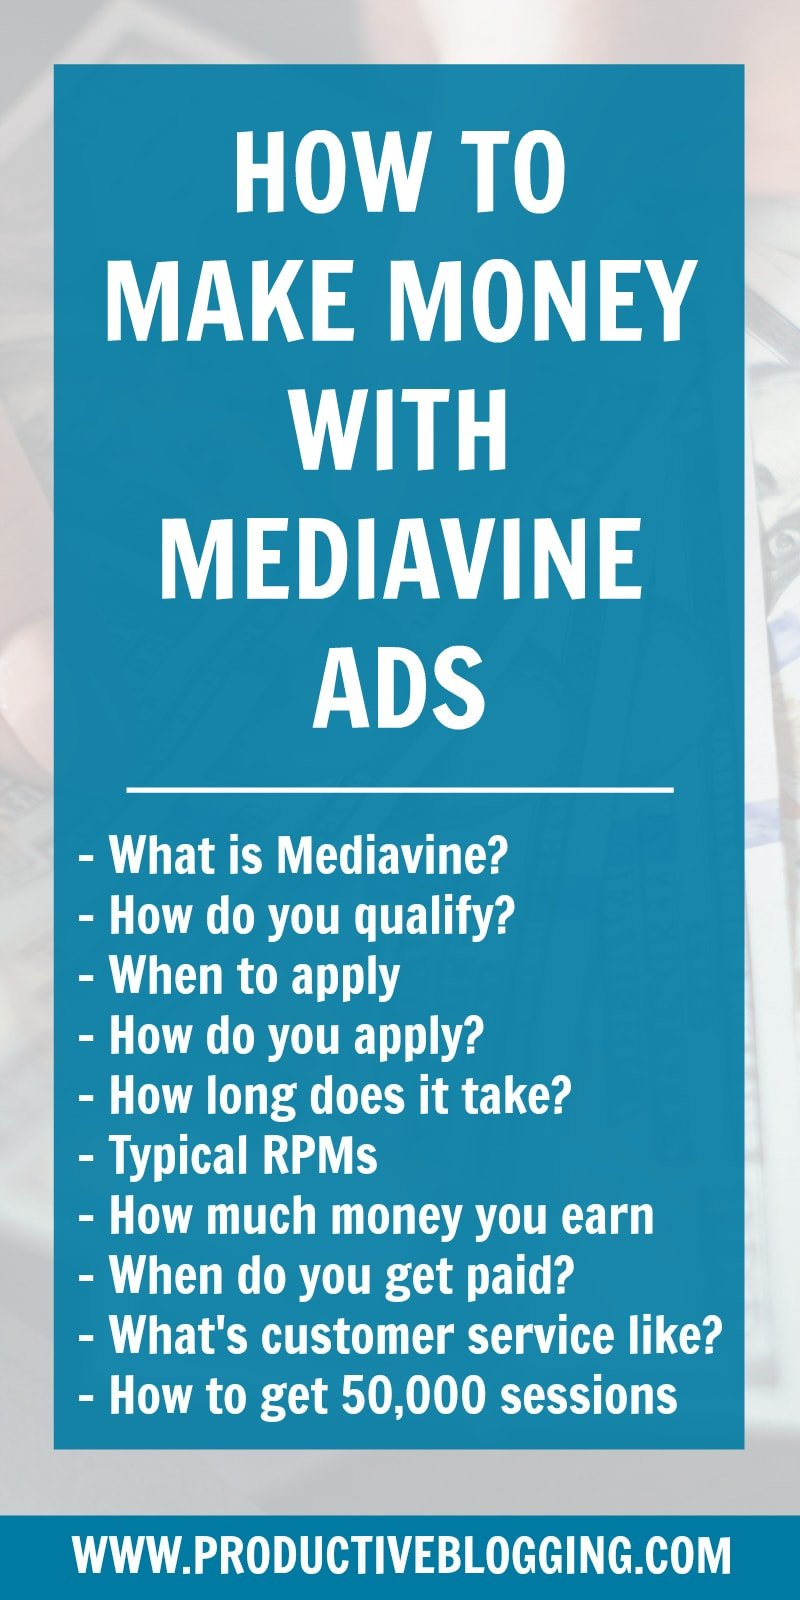 Want to make a really great passive income from your blog? Then join Mediavine! In this article I share exactly how to make money with Mediavine ads. #mediavine #mediavineads #makemoneyblogging #monetiseyourblog #makemoneywithads #makemoneywithmediavine #adincome #bloggingformoney #howdoblogsmakemoney #passiveincome #treatitlikeabusiness #businessblogging #bizblogging #blogginggoals #bloggingtips #productiveblogging #blogsmarternotharder #productivebloggingcommunity